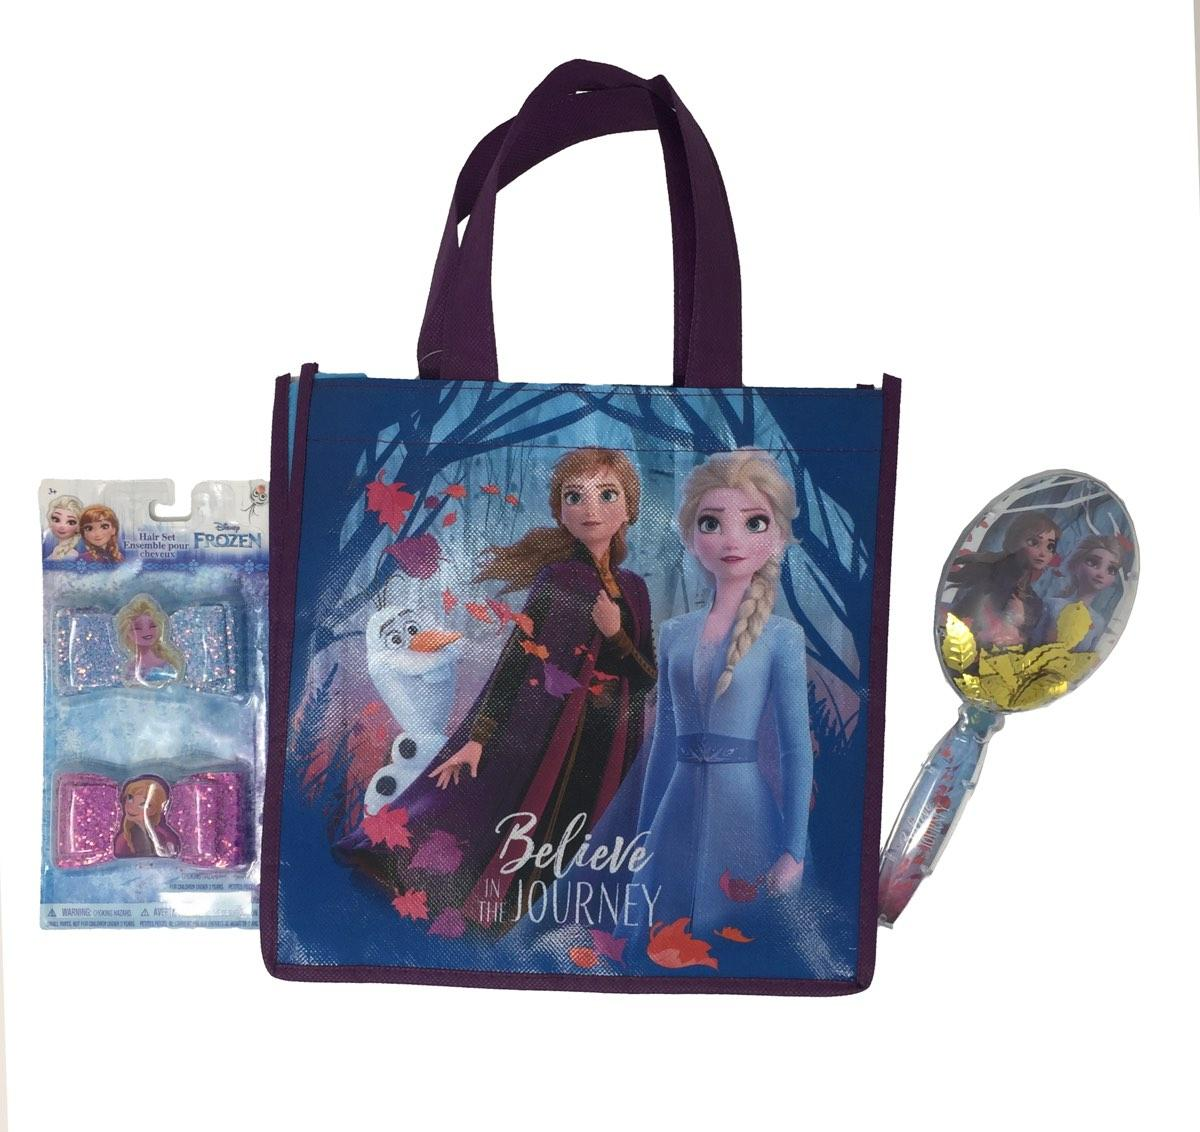 Frozen 2 Tote Bag, Hair Clip Bows, and Confitti Brush